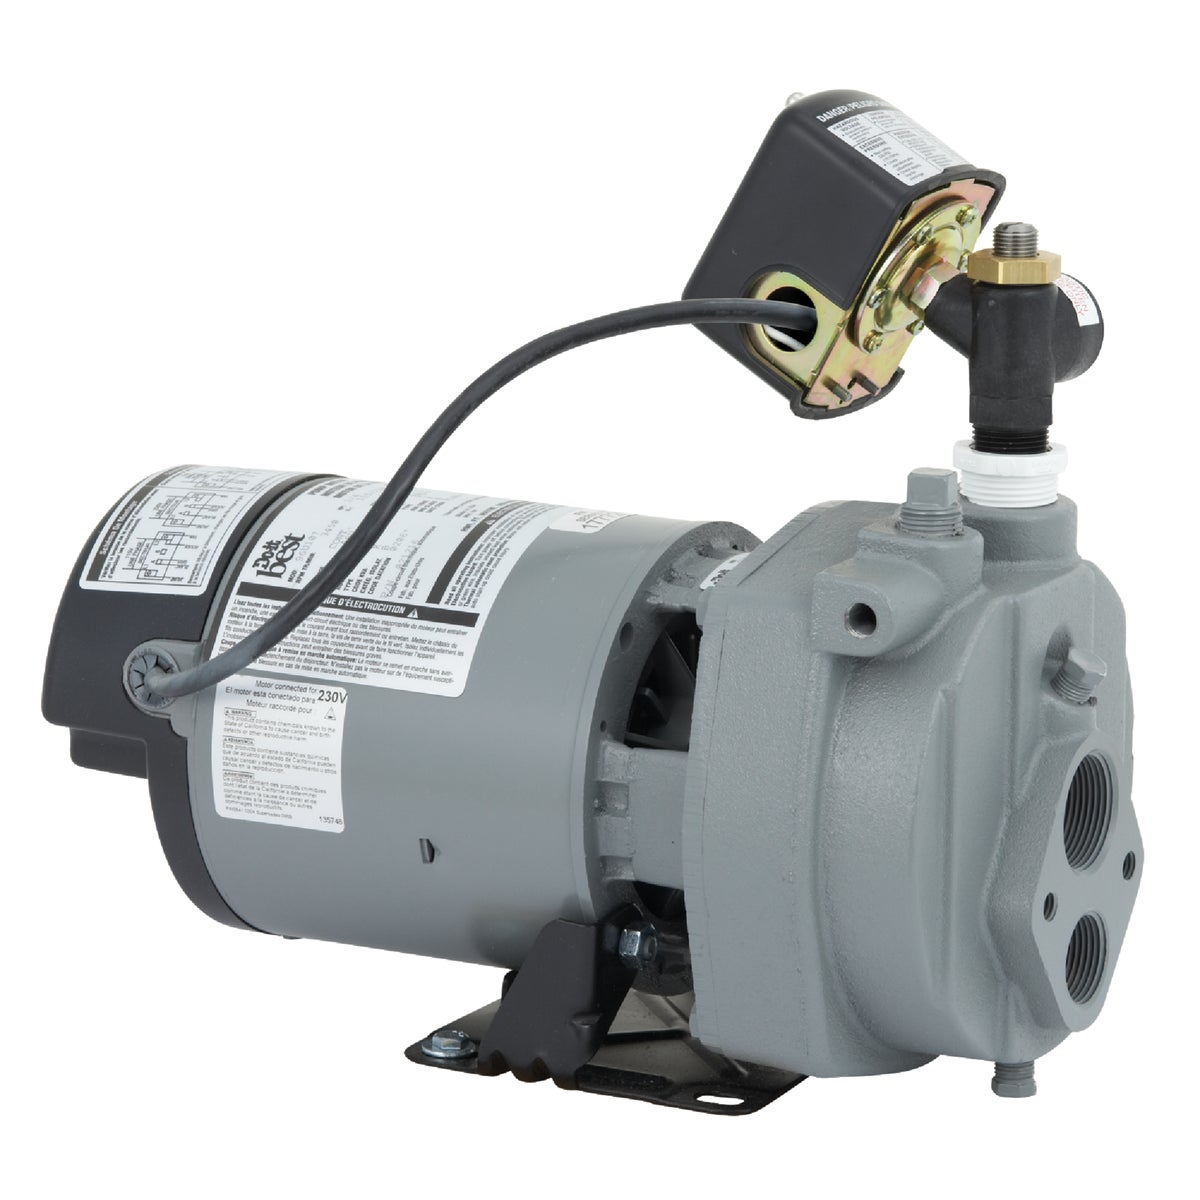 3/4HP CONV JET WELL PUMP - JHU07 by Star Water Systems